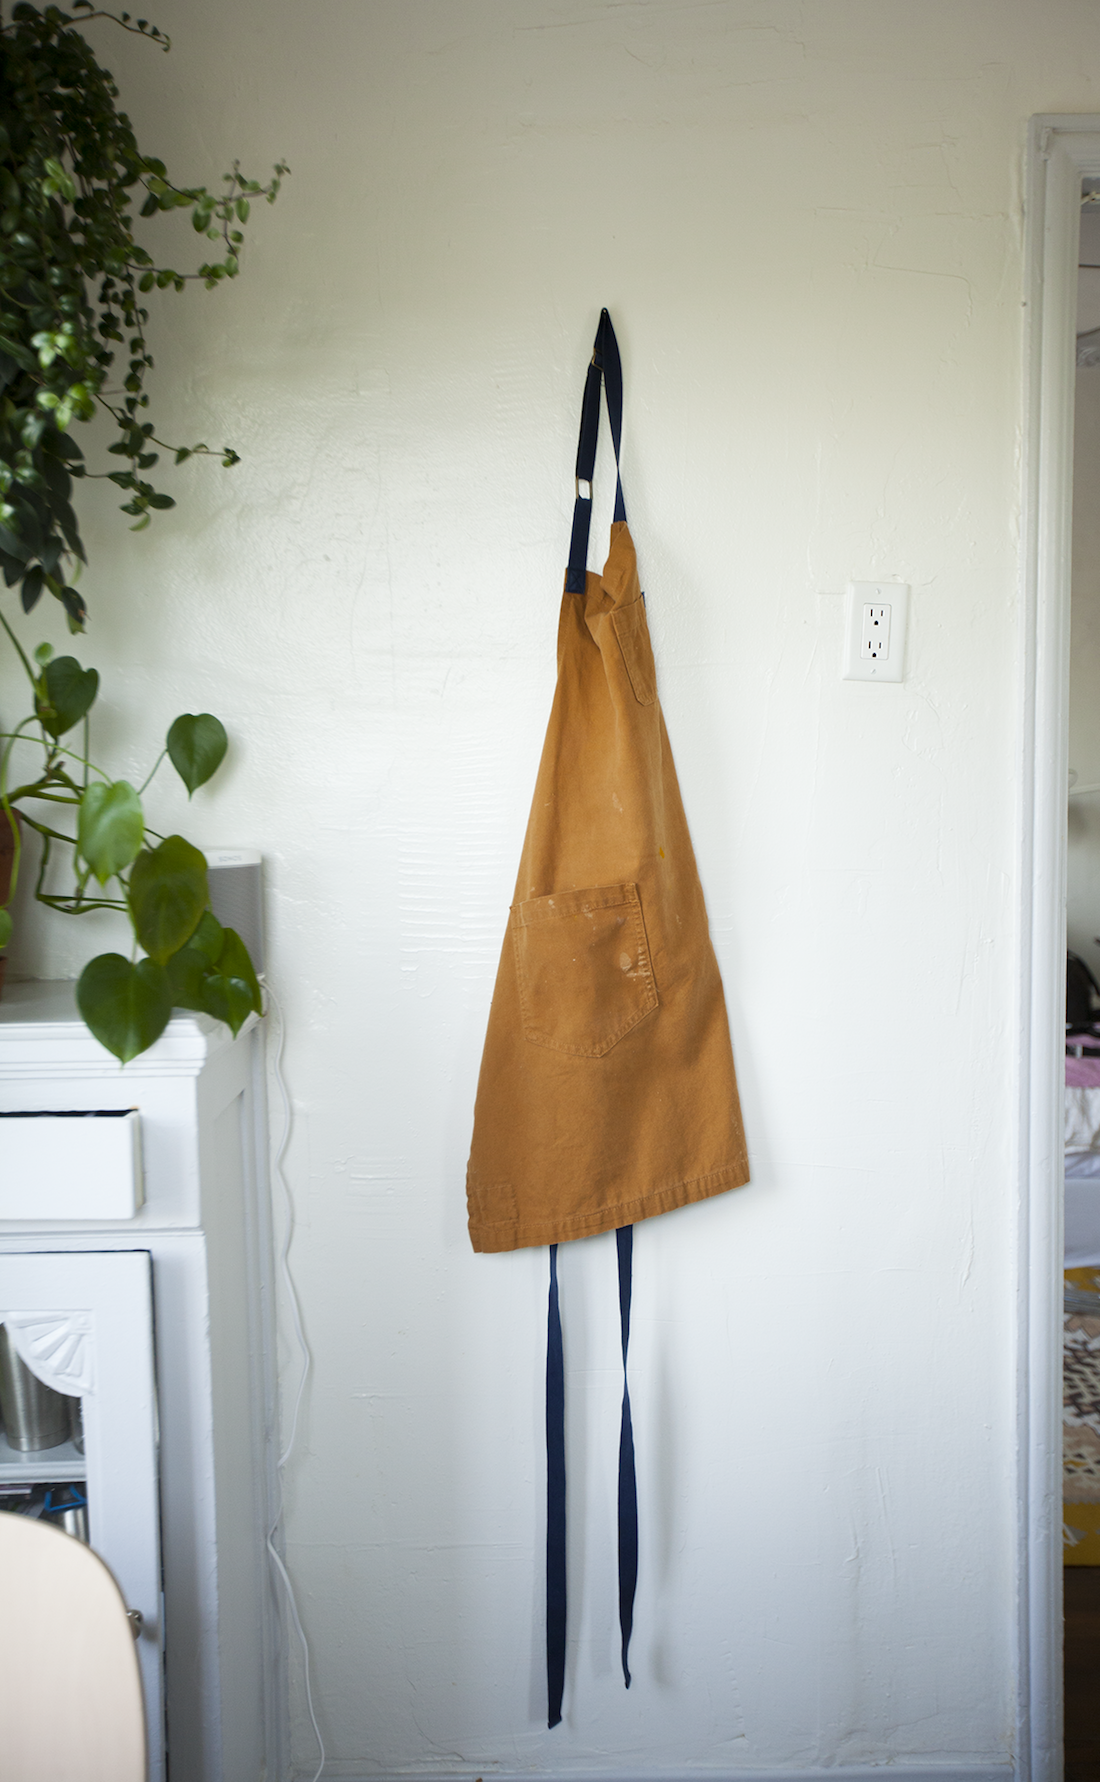 Lee's apron hangs in her kitchen